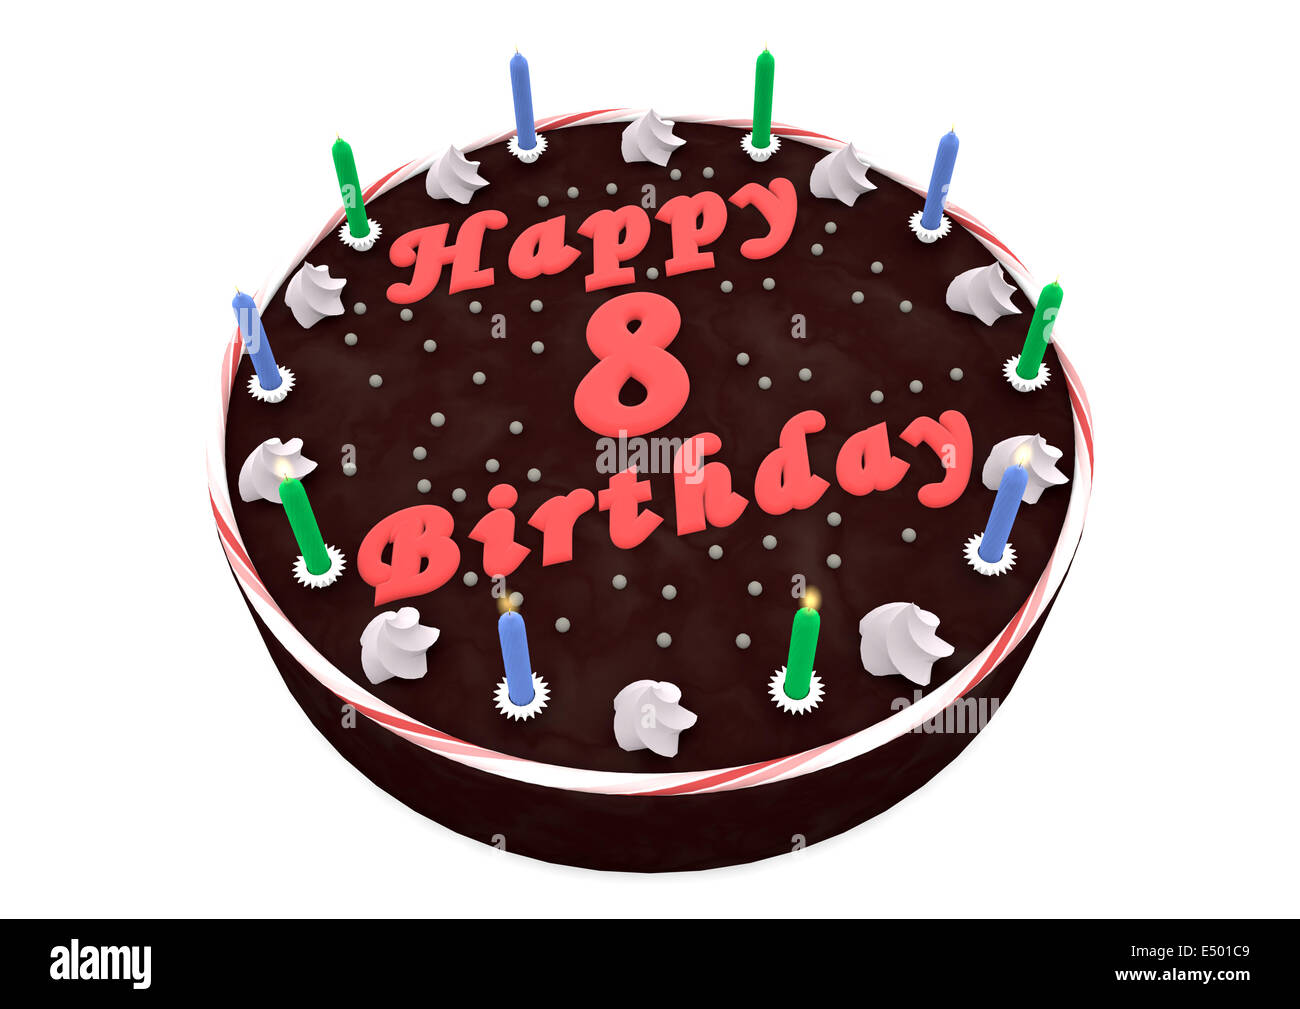 Amazing Chocolate Cake For 8Th Birthday Stock Photo 71915881 Alamy Funny Birthday Cards Online Inifodamsfinfo